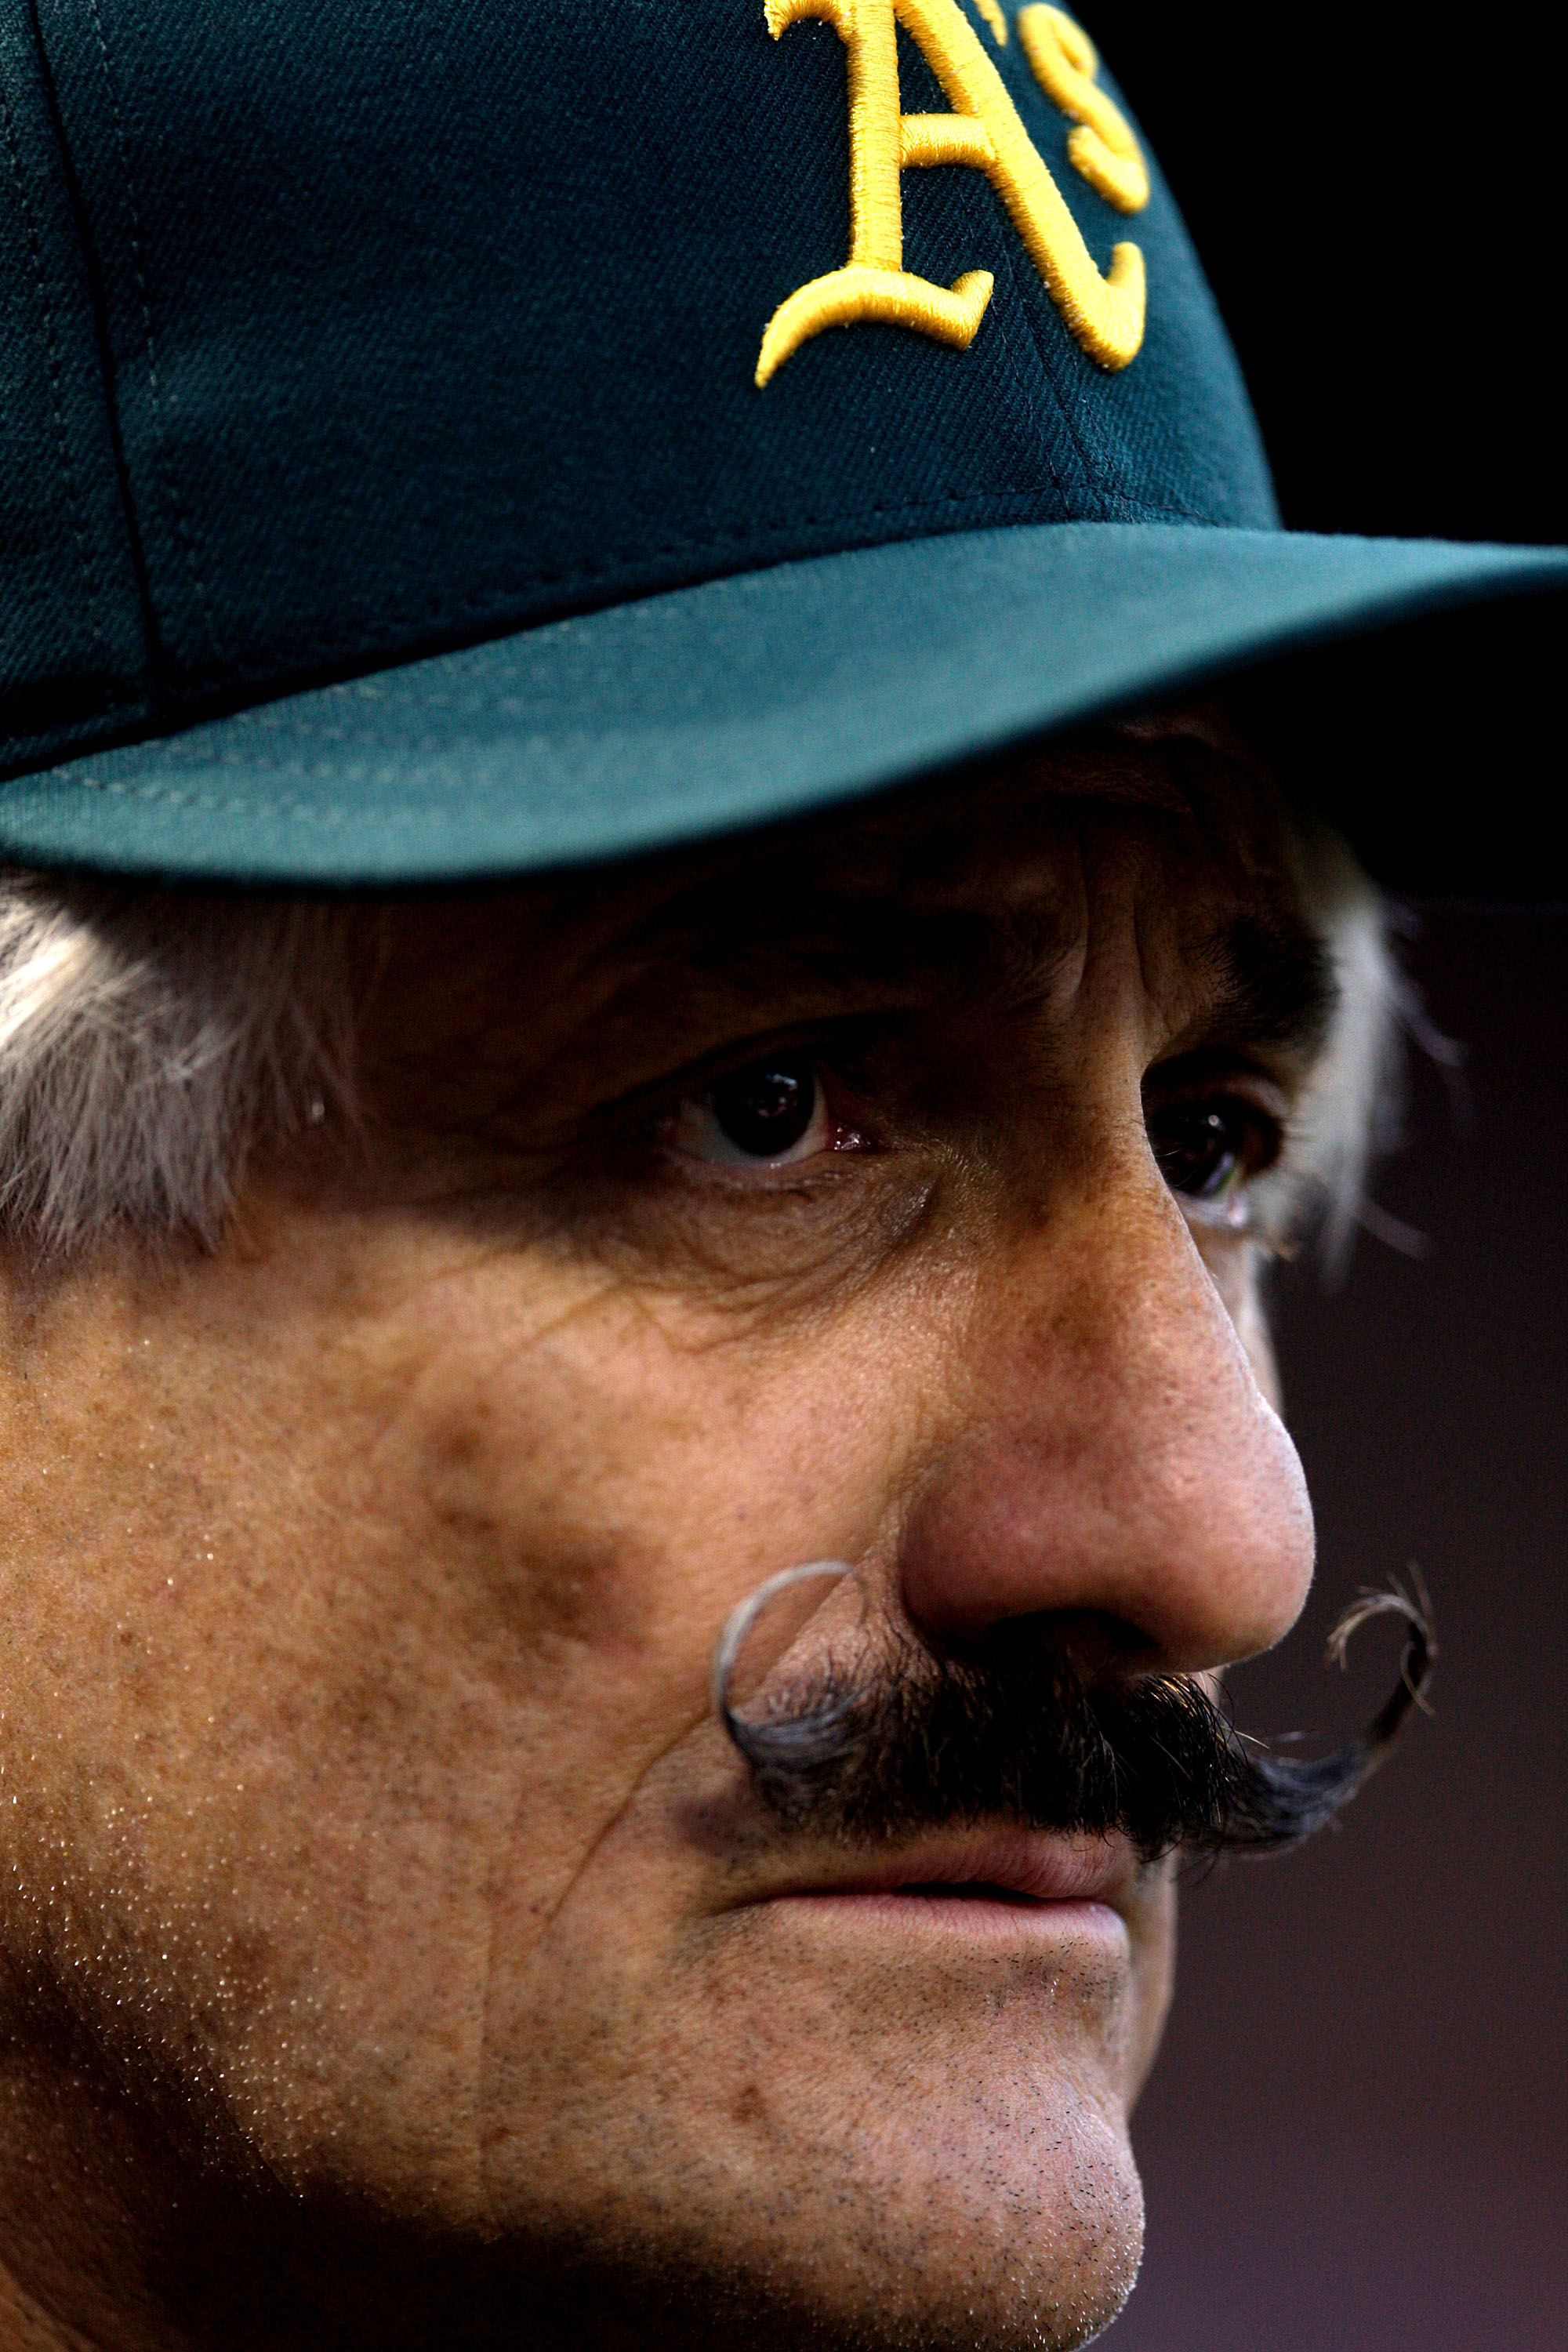 ST LOUIS, MO - JULY 12:  Hall of famer Rollie Fingers looks on during the Taco Bell All-Star Legends & Celebrity Softball Game at Busch Stadium on July 12, 2009 in St. Louis, Missouri.  (Photo by Jamie Squire/Getty Images)